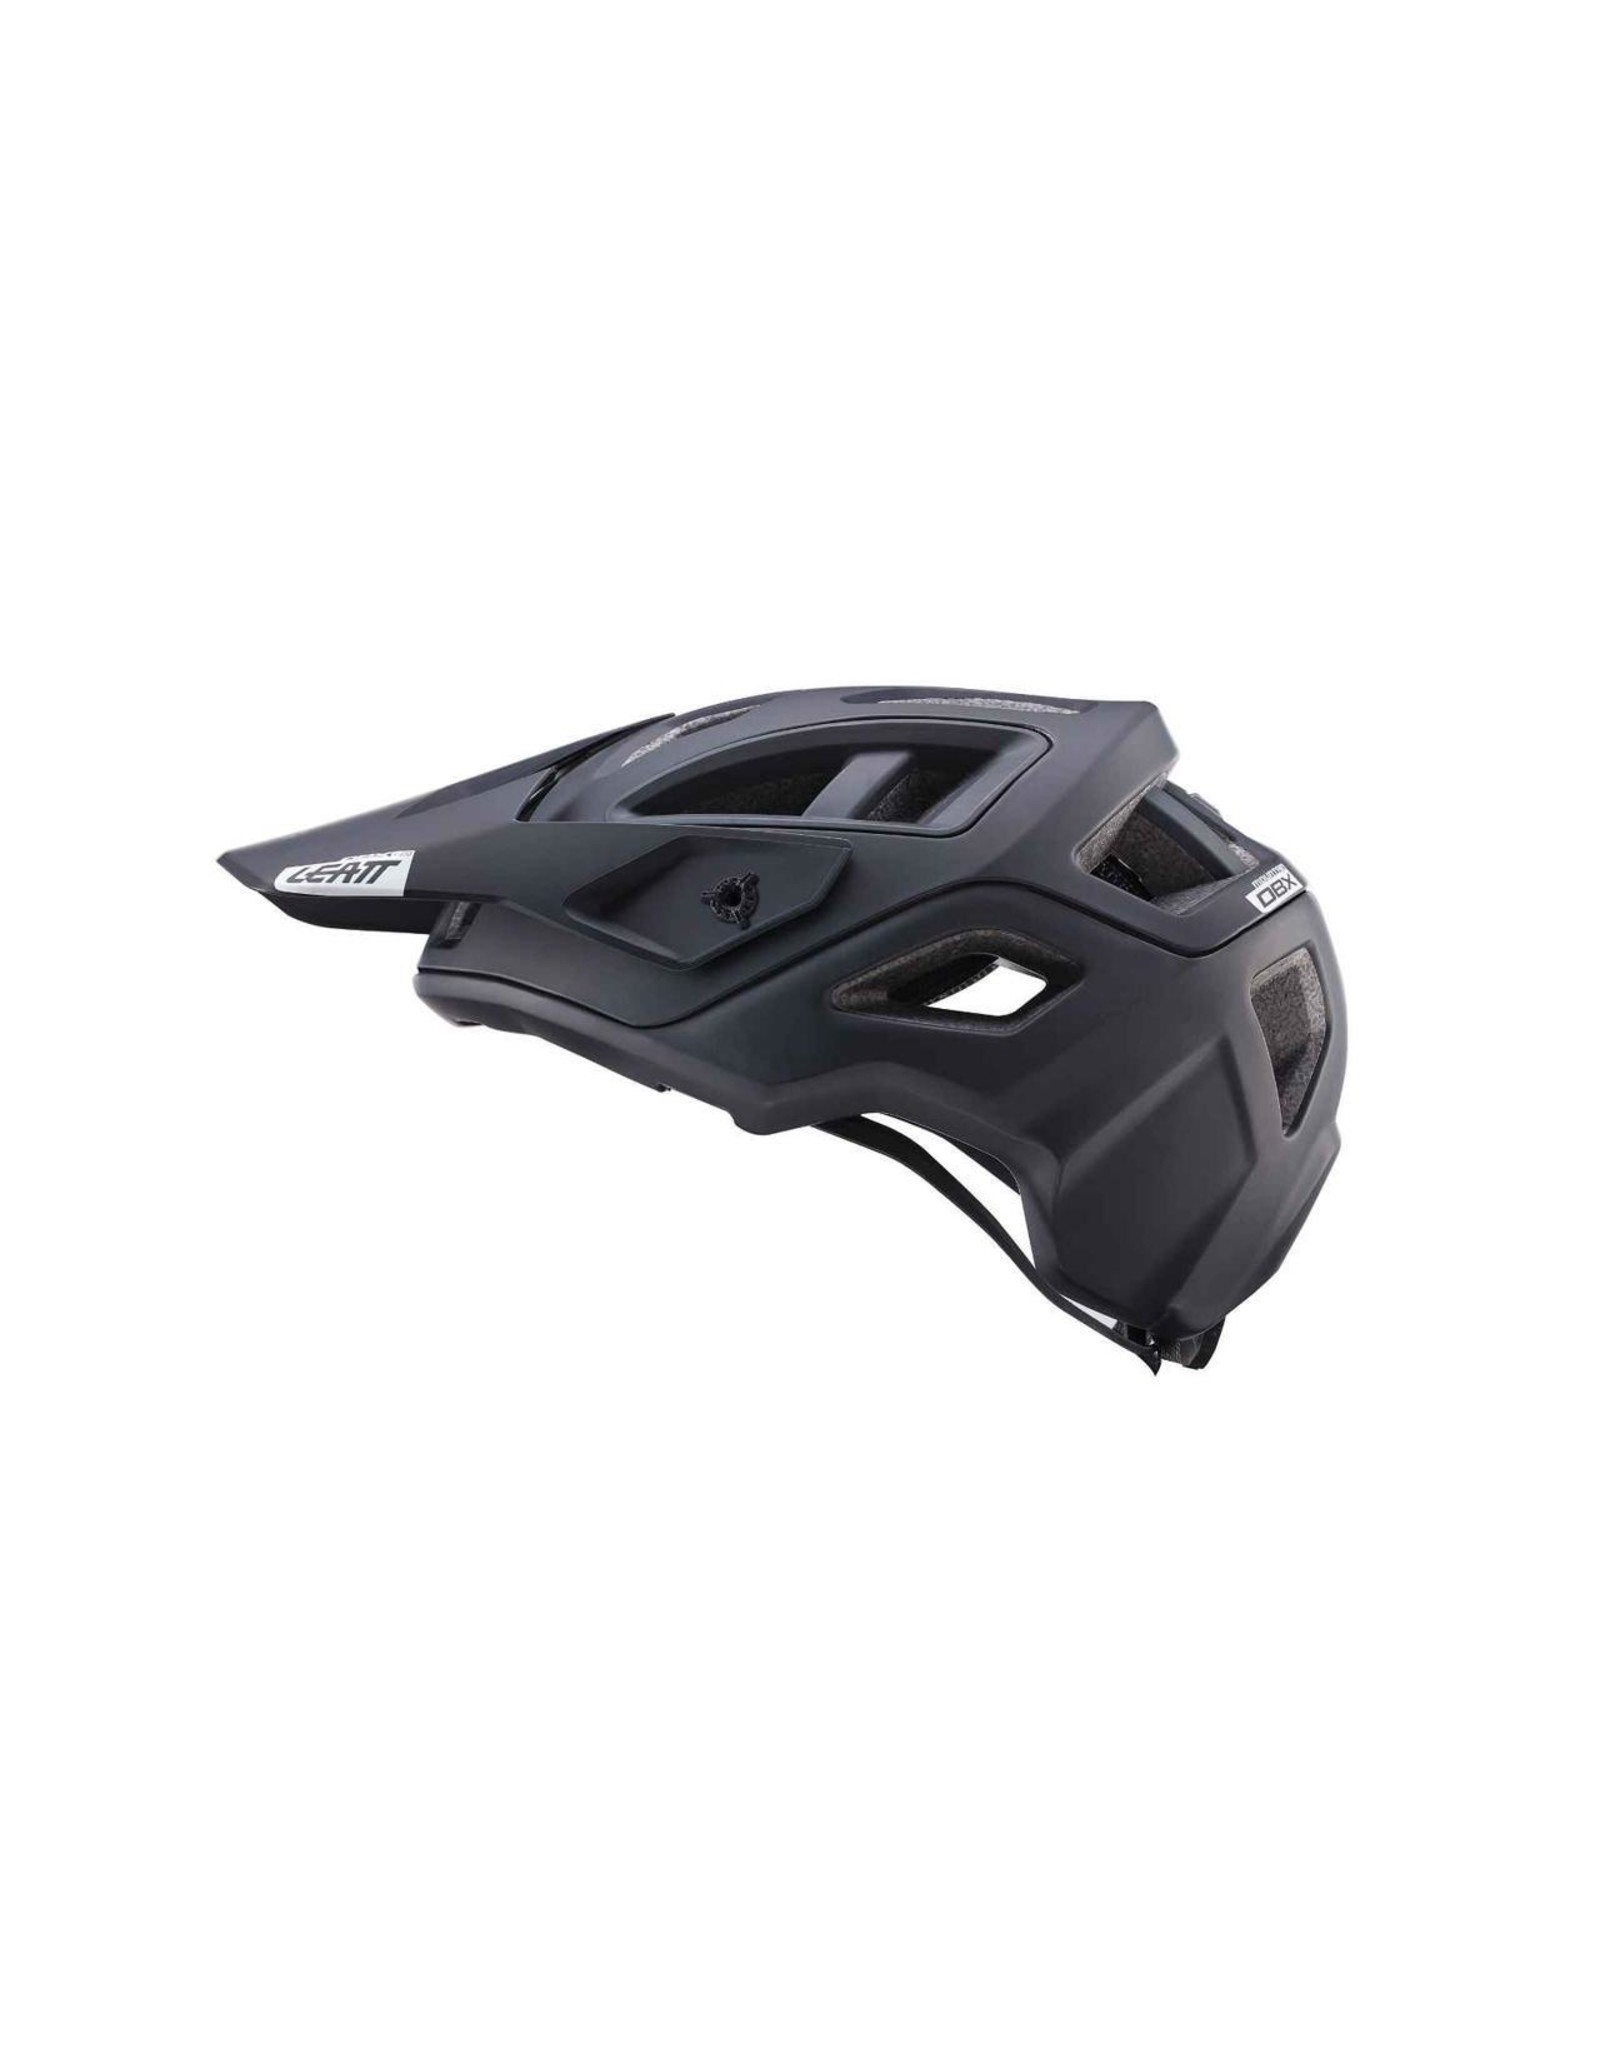 Leatt DBX 3.0 All Mountain Helmet, Black - M (55-59cm)